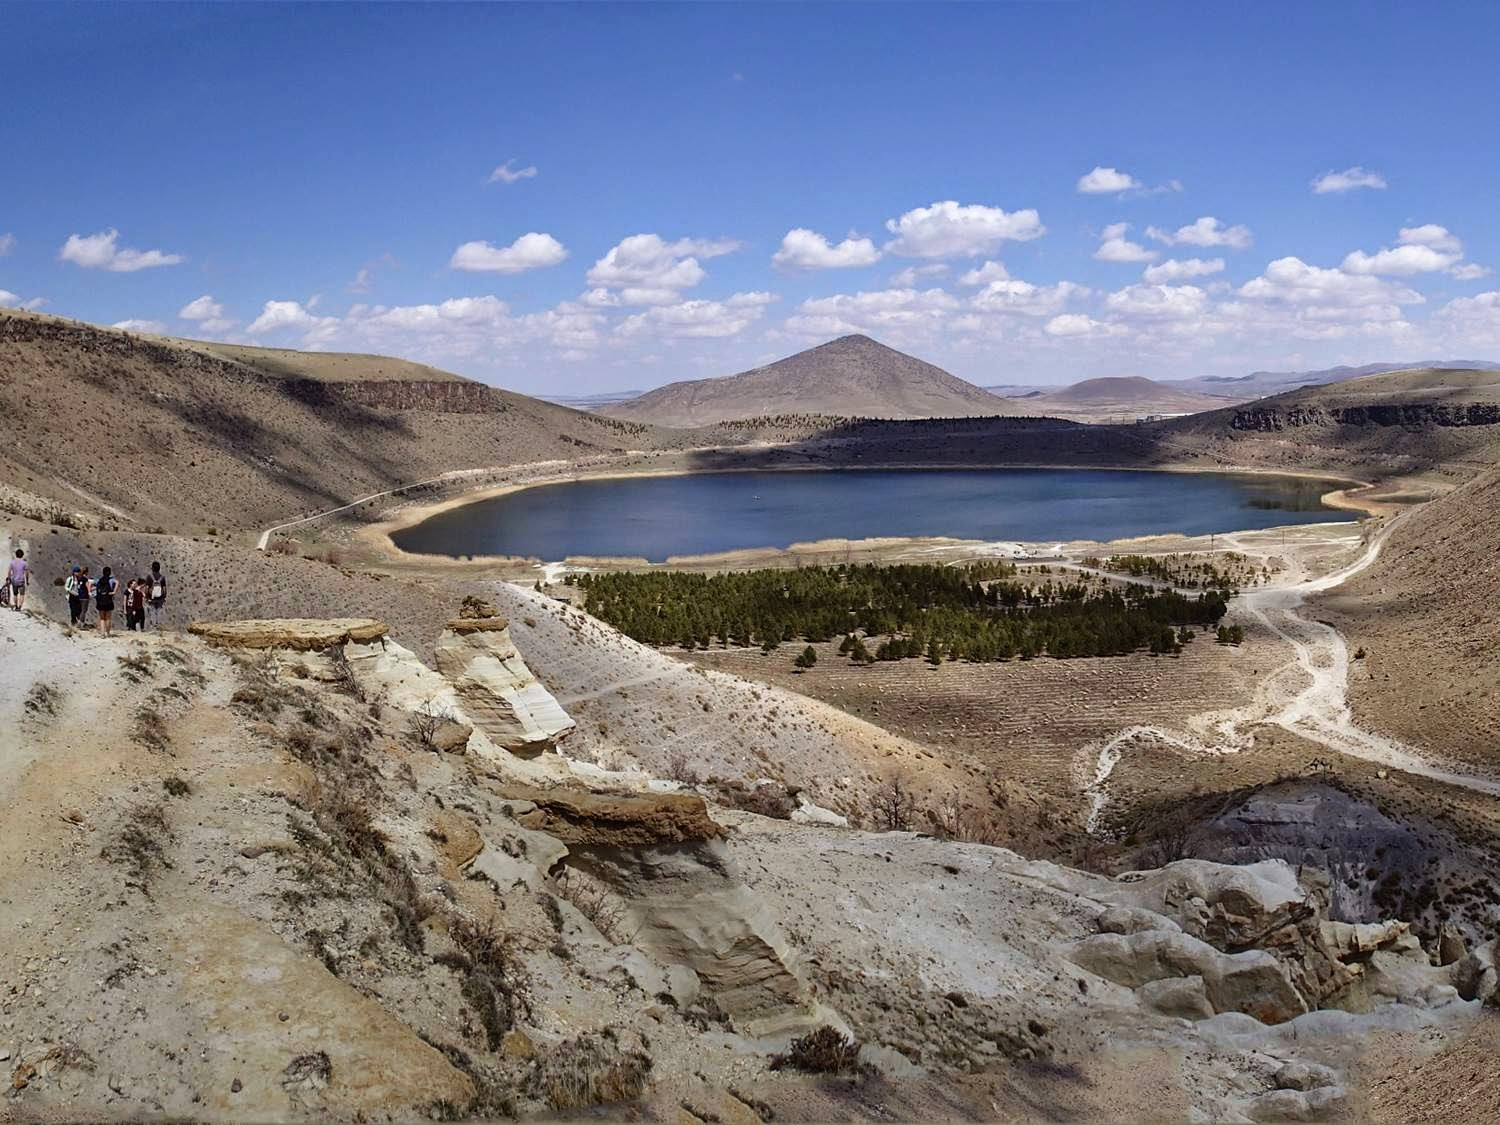 Nar G�l� in April 2014. The lake formed in an old volcano.